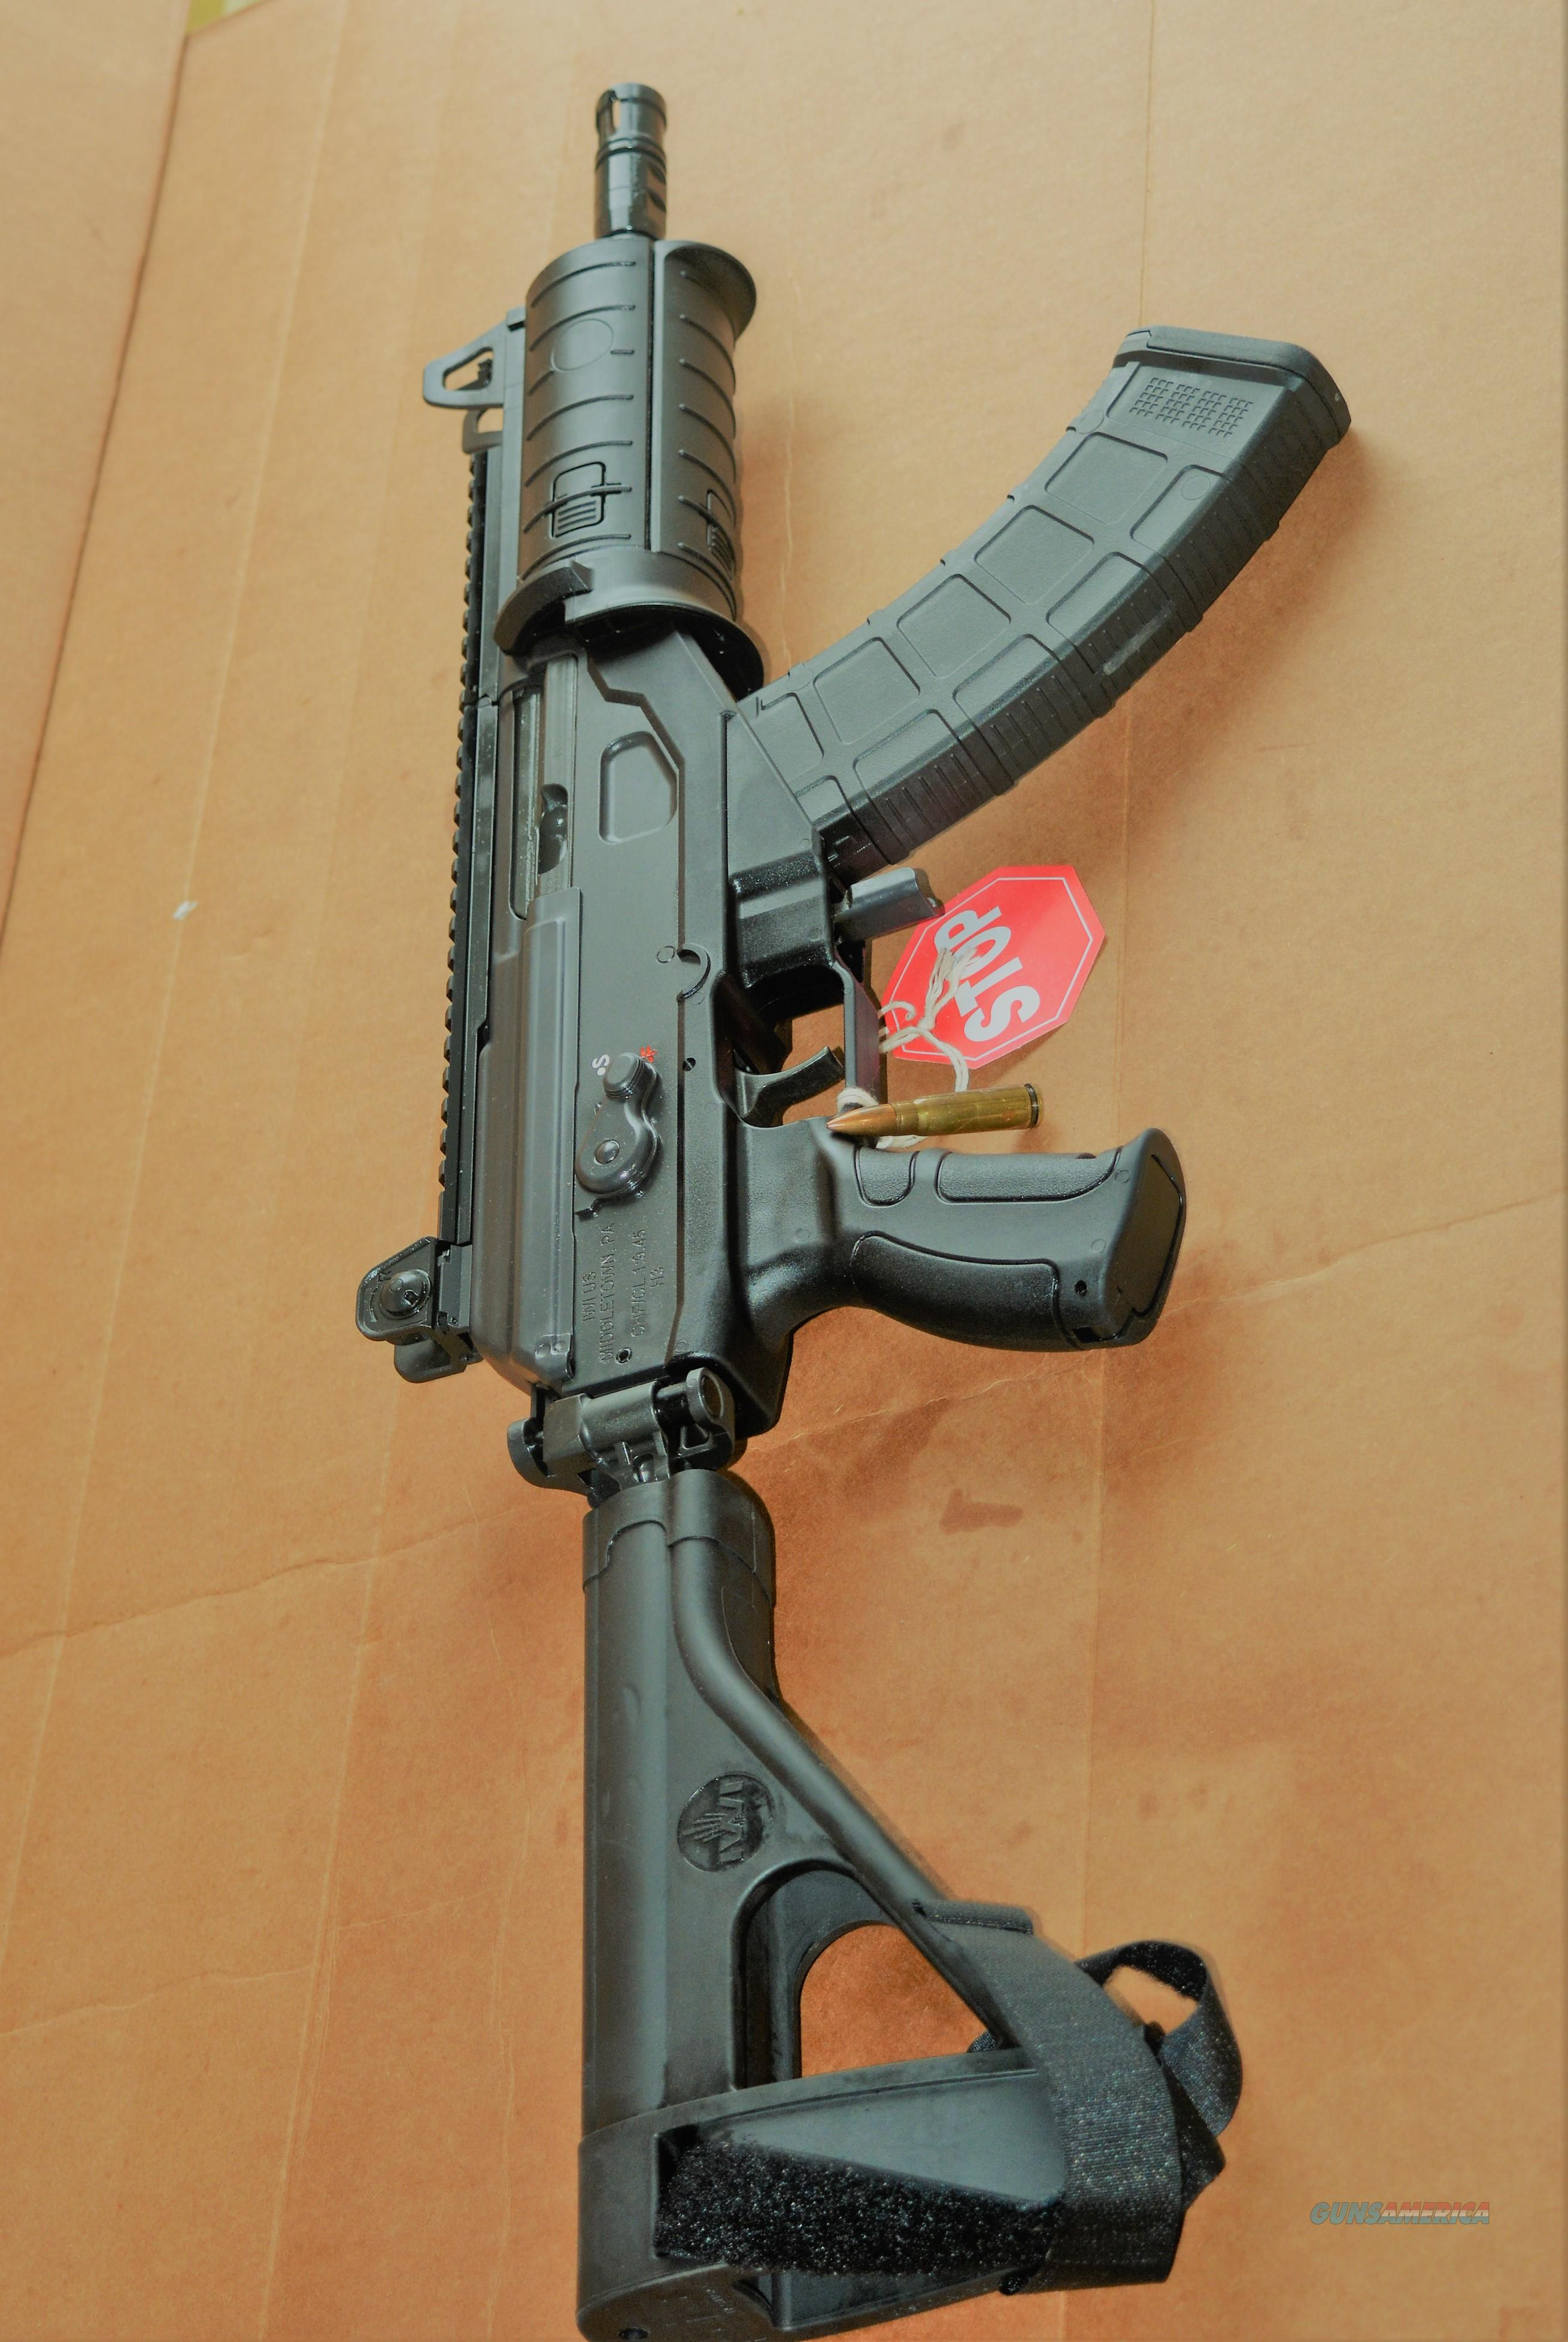 EASY PAY $101 IWI Galil (PDW) AK-47 Pistol compact 7 62x39 Ak47 Accepts  magazine Milled steel receiver 8 4